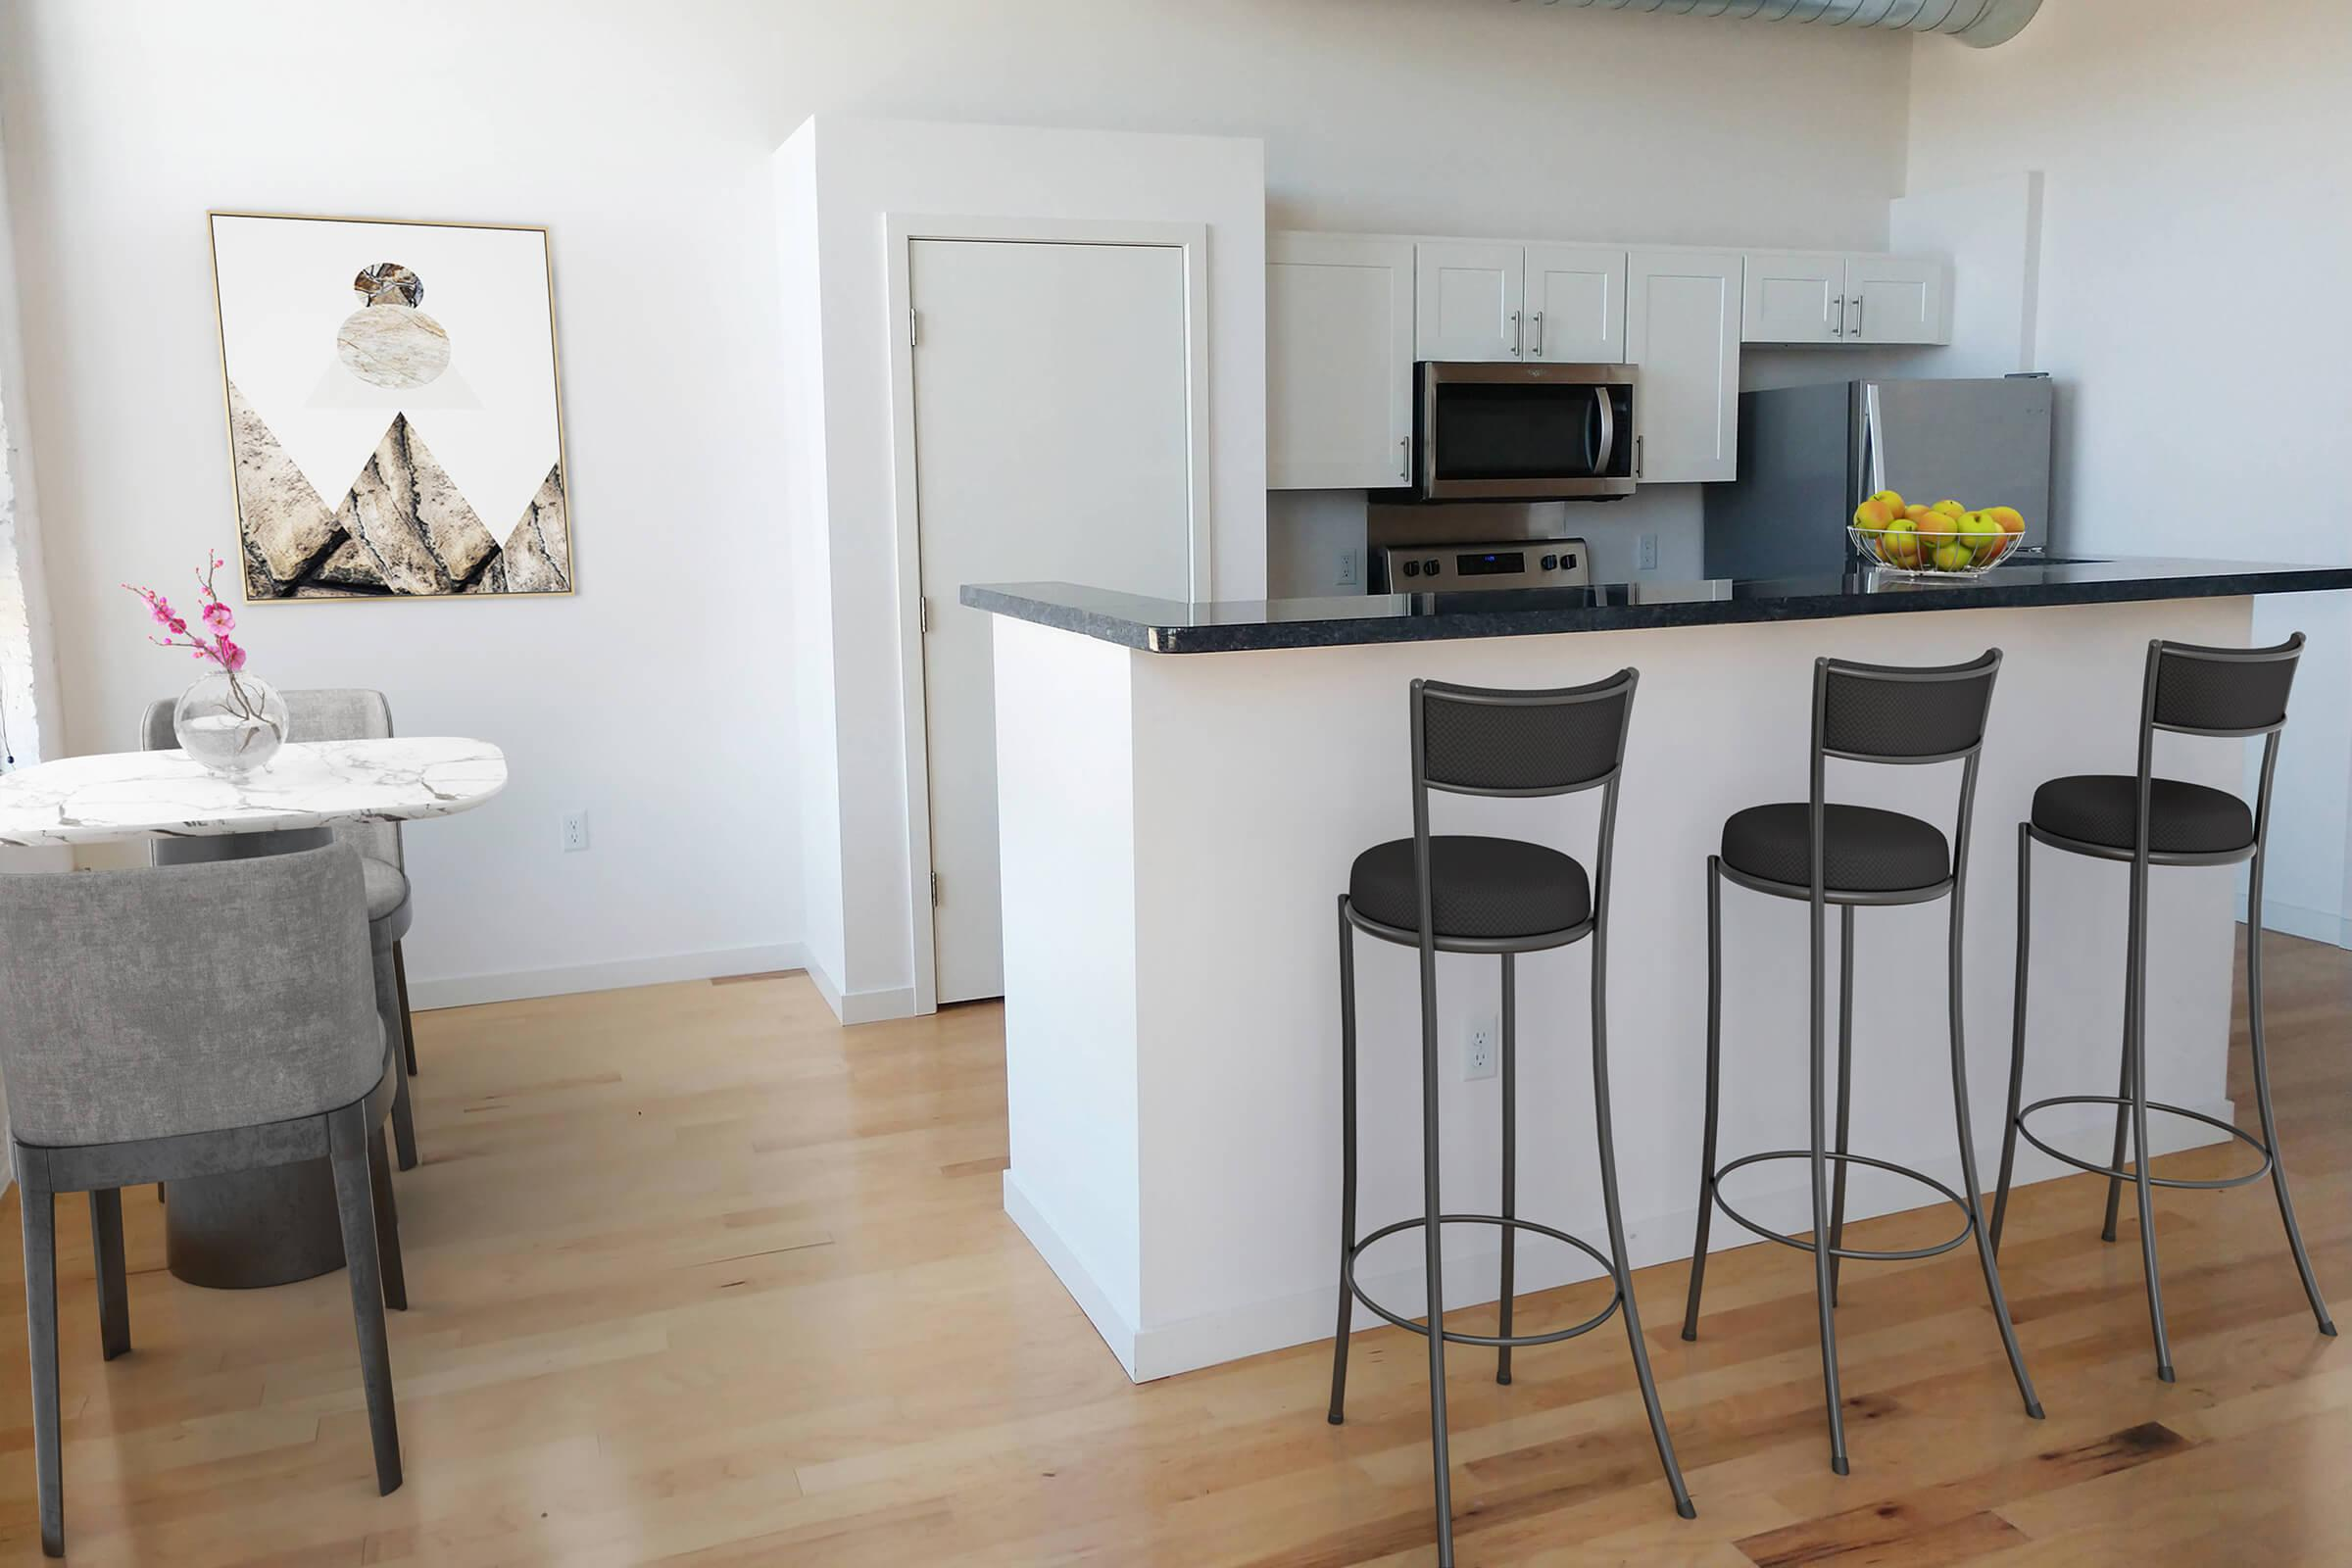 a kitchen with a table and a chair in a room